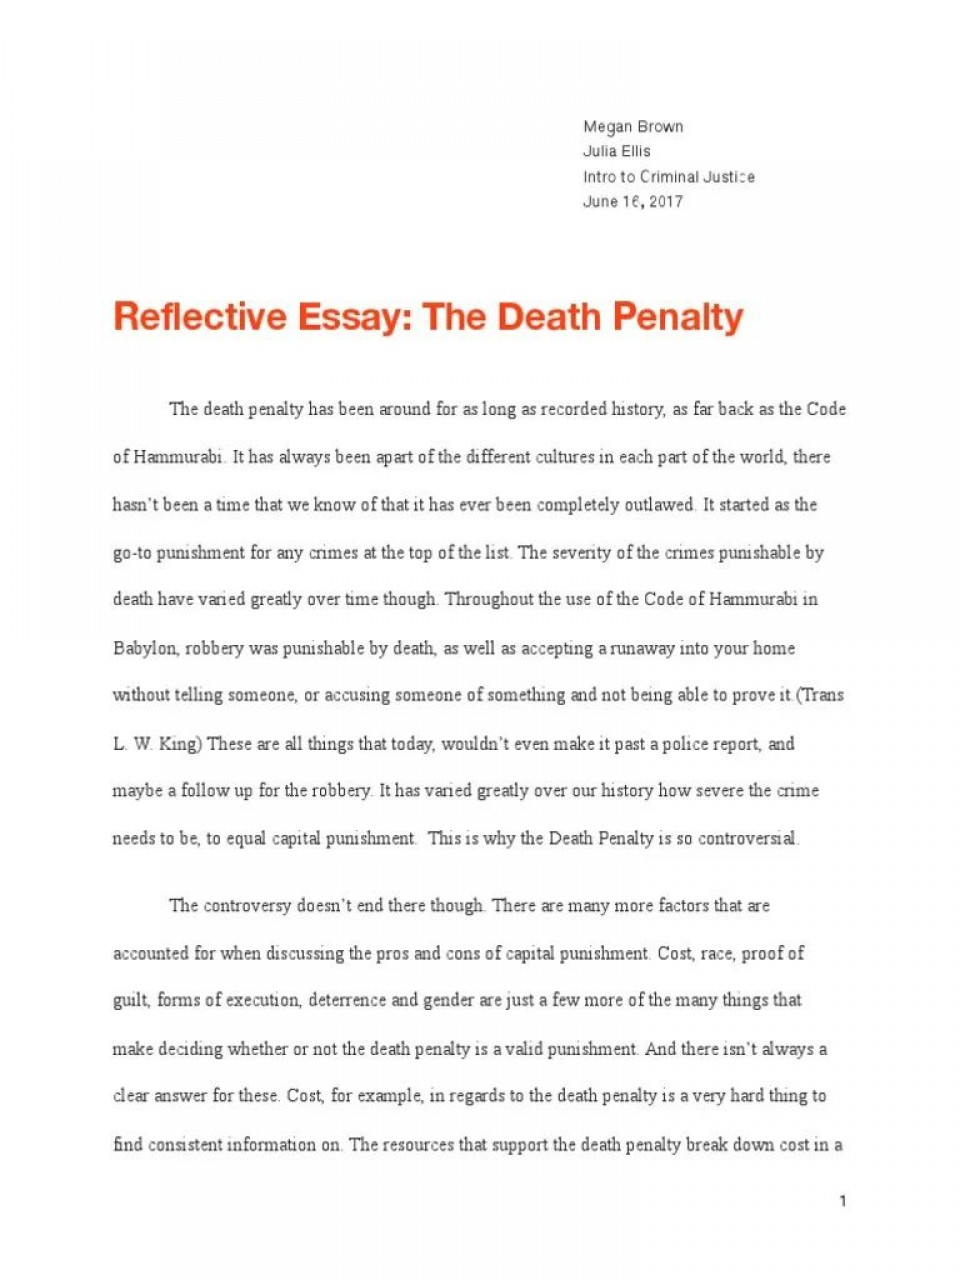 005 Awesome Capital Punishment Essay Photo  Ielt Simon In Hindi960